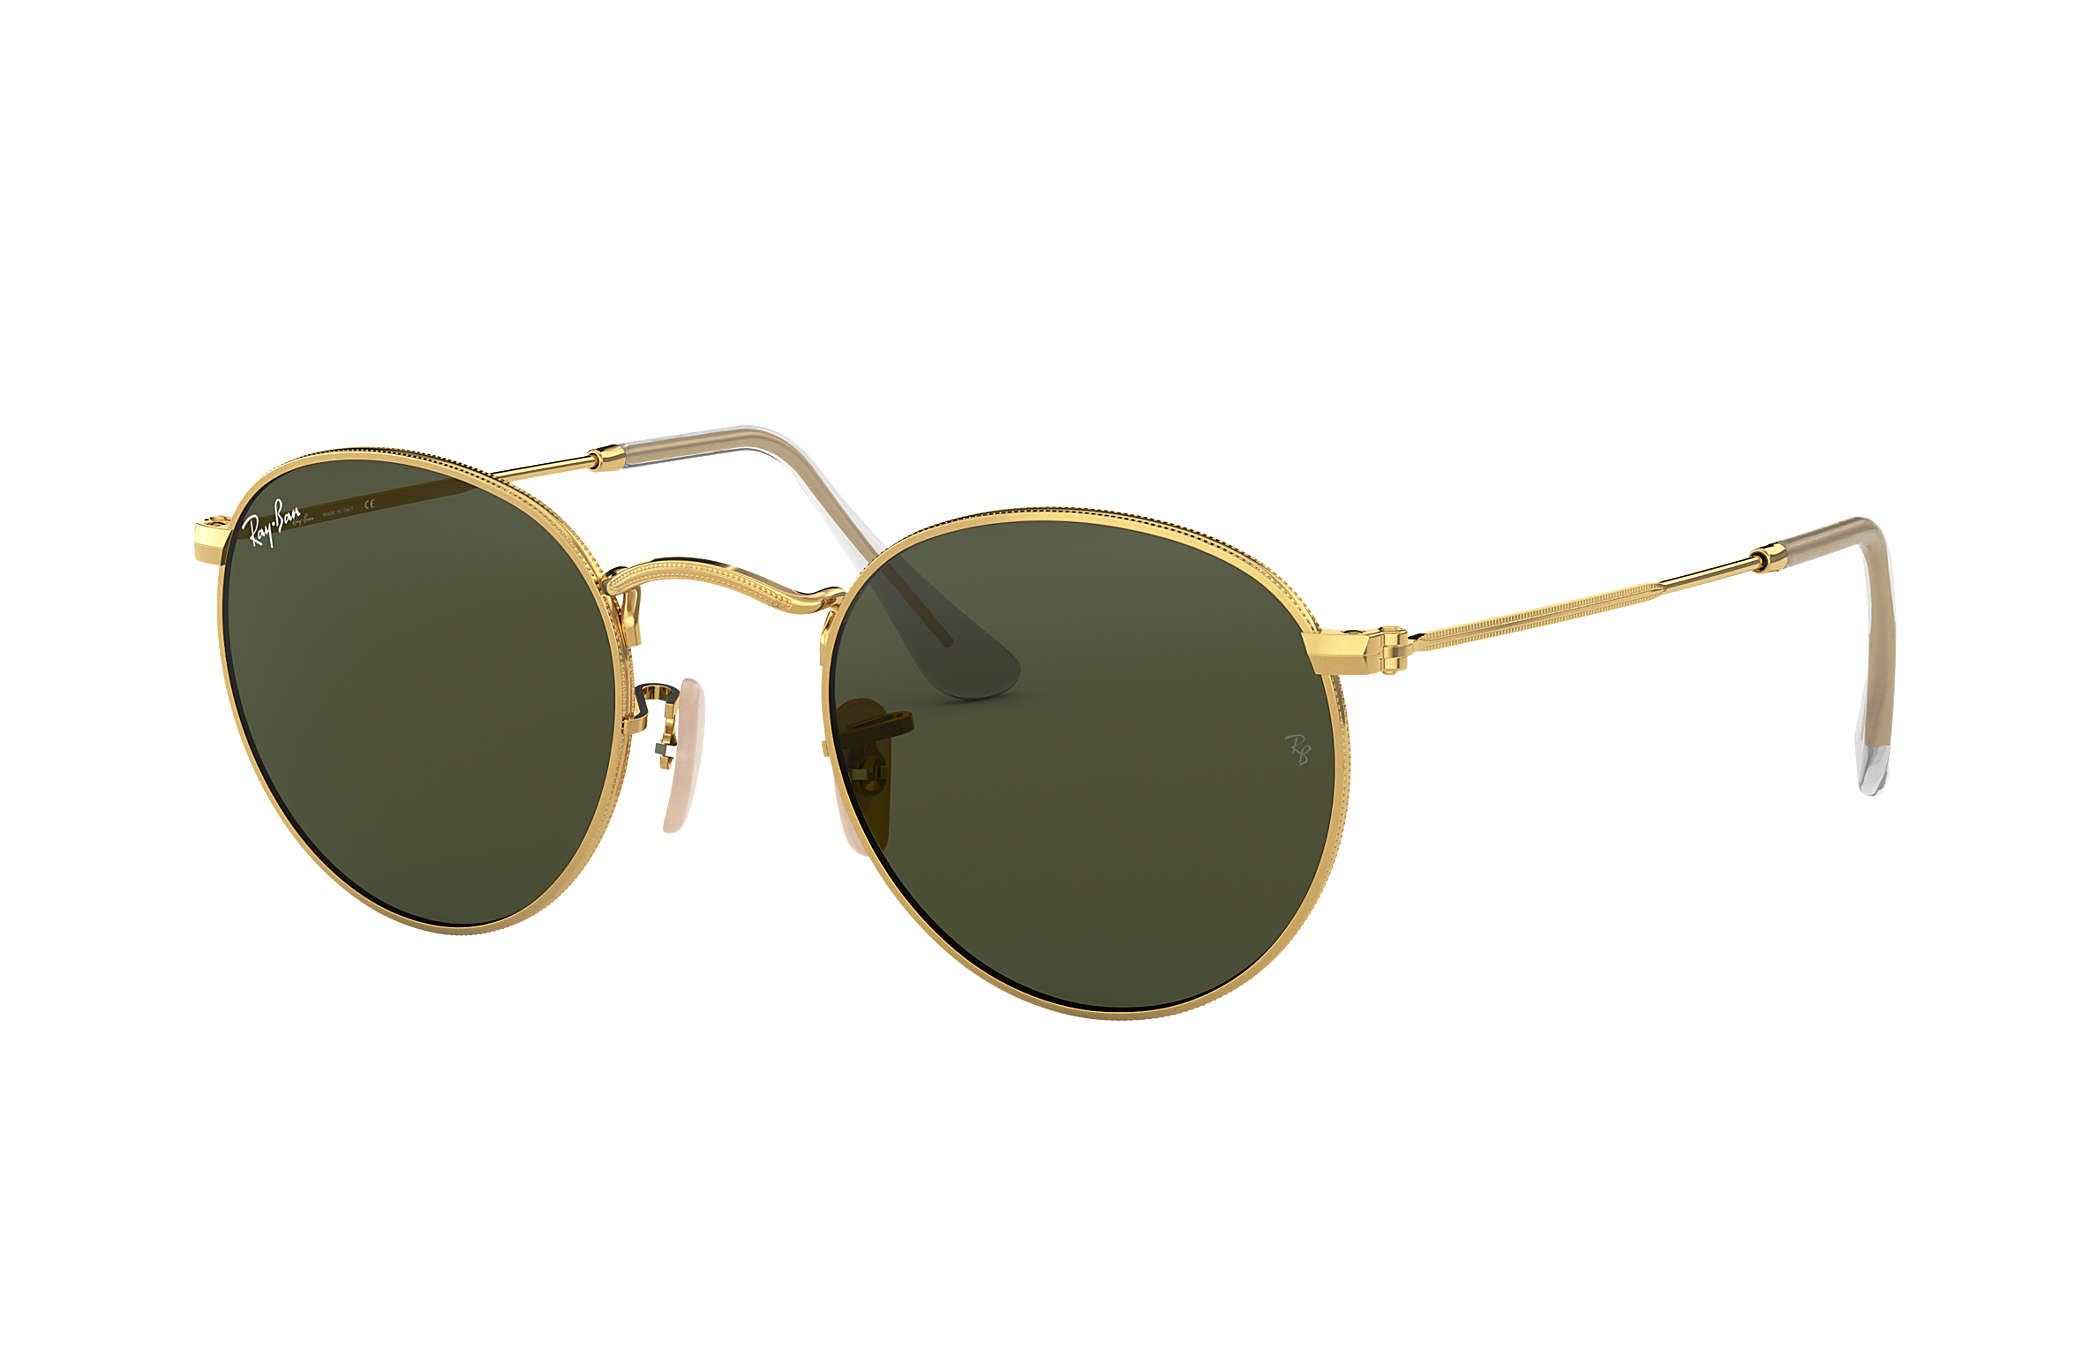 696a50c28e02a Ray-Ban Round Metal RB3447 Ouro - Metal - Lentes Verde ...